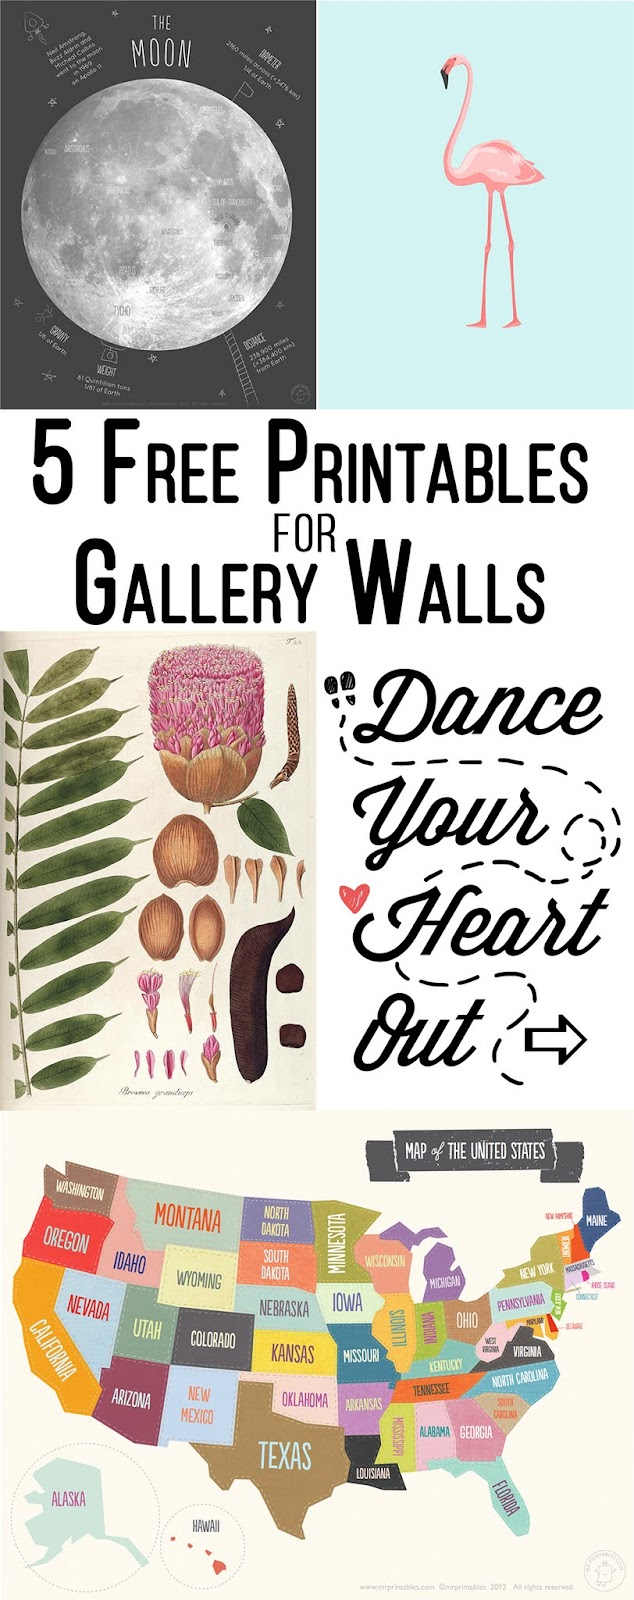 5 Free Printables for Gallery Walls - littleladylittlecity.com